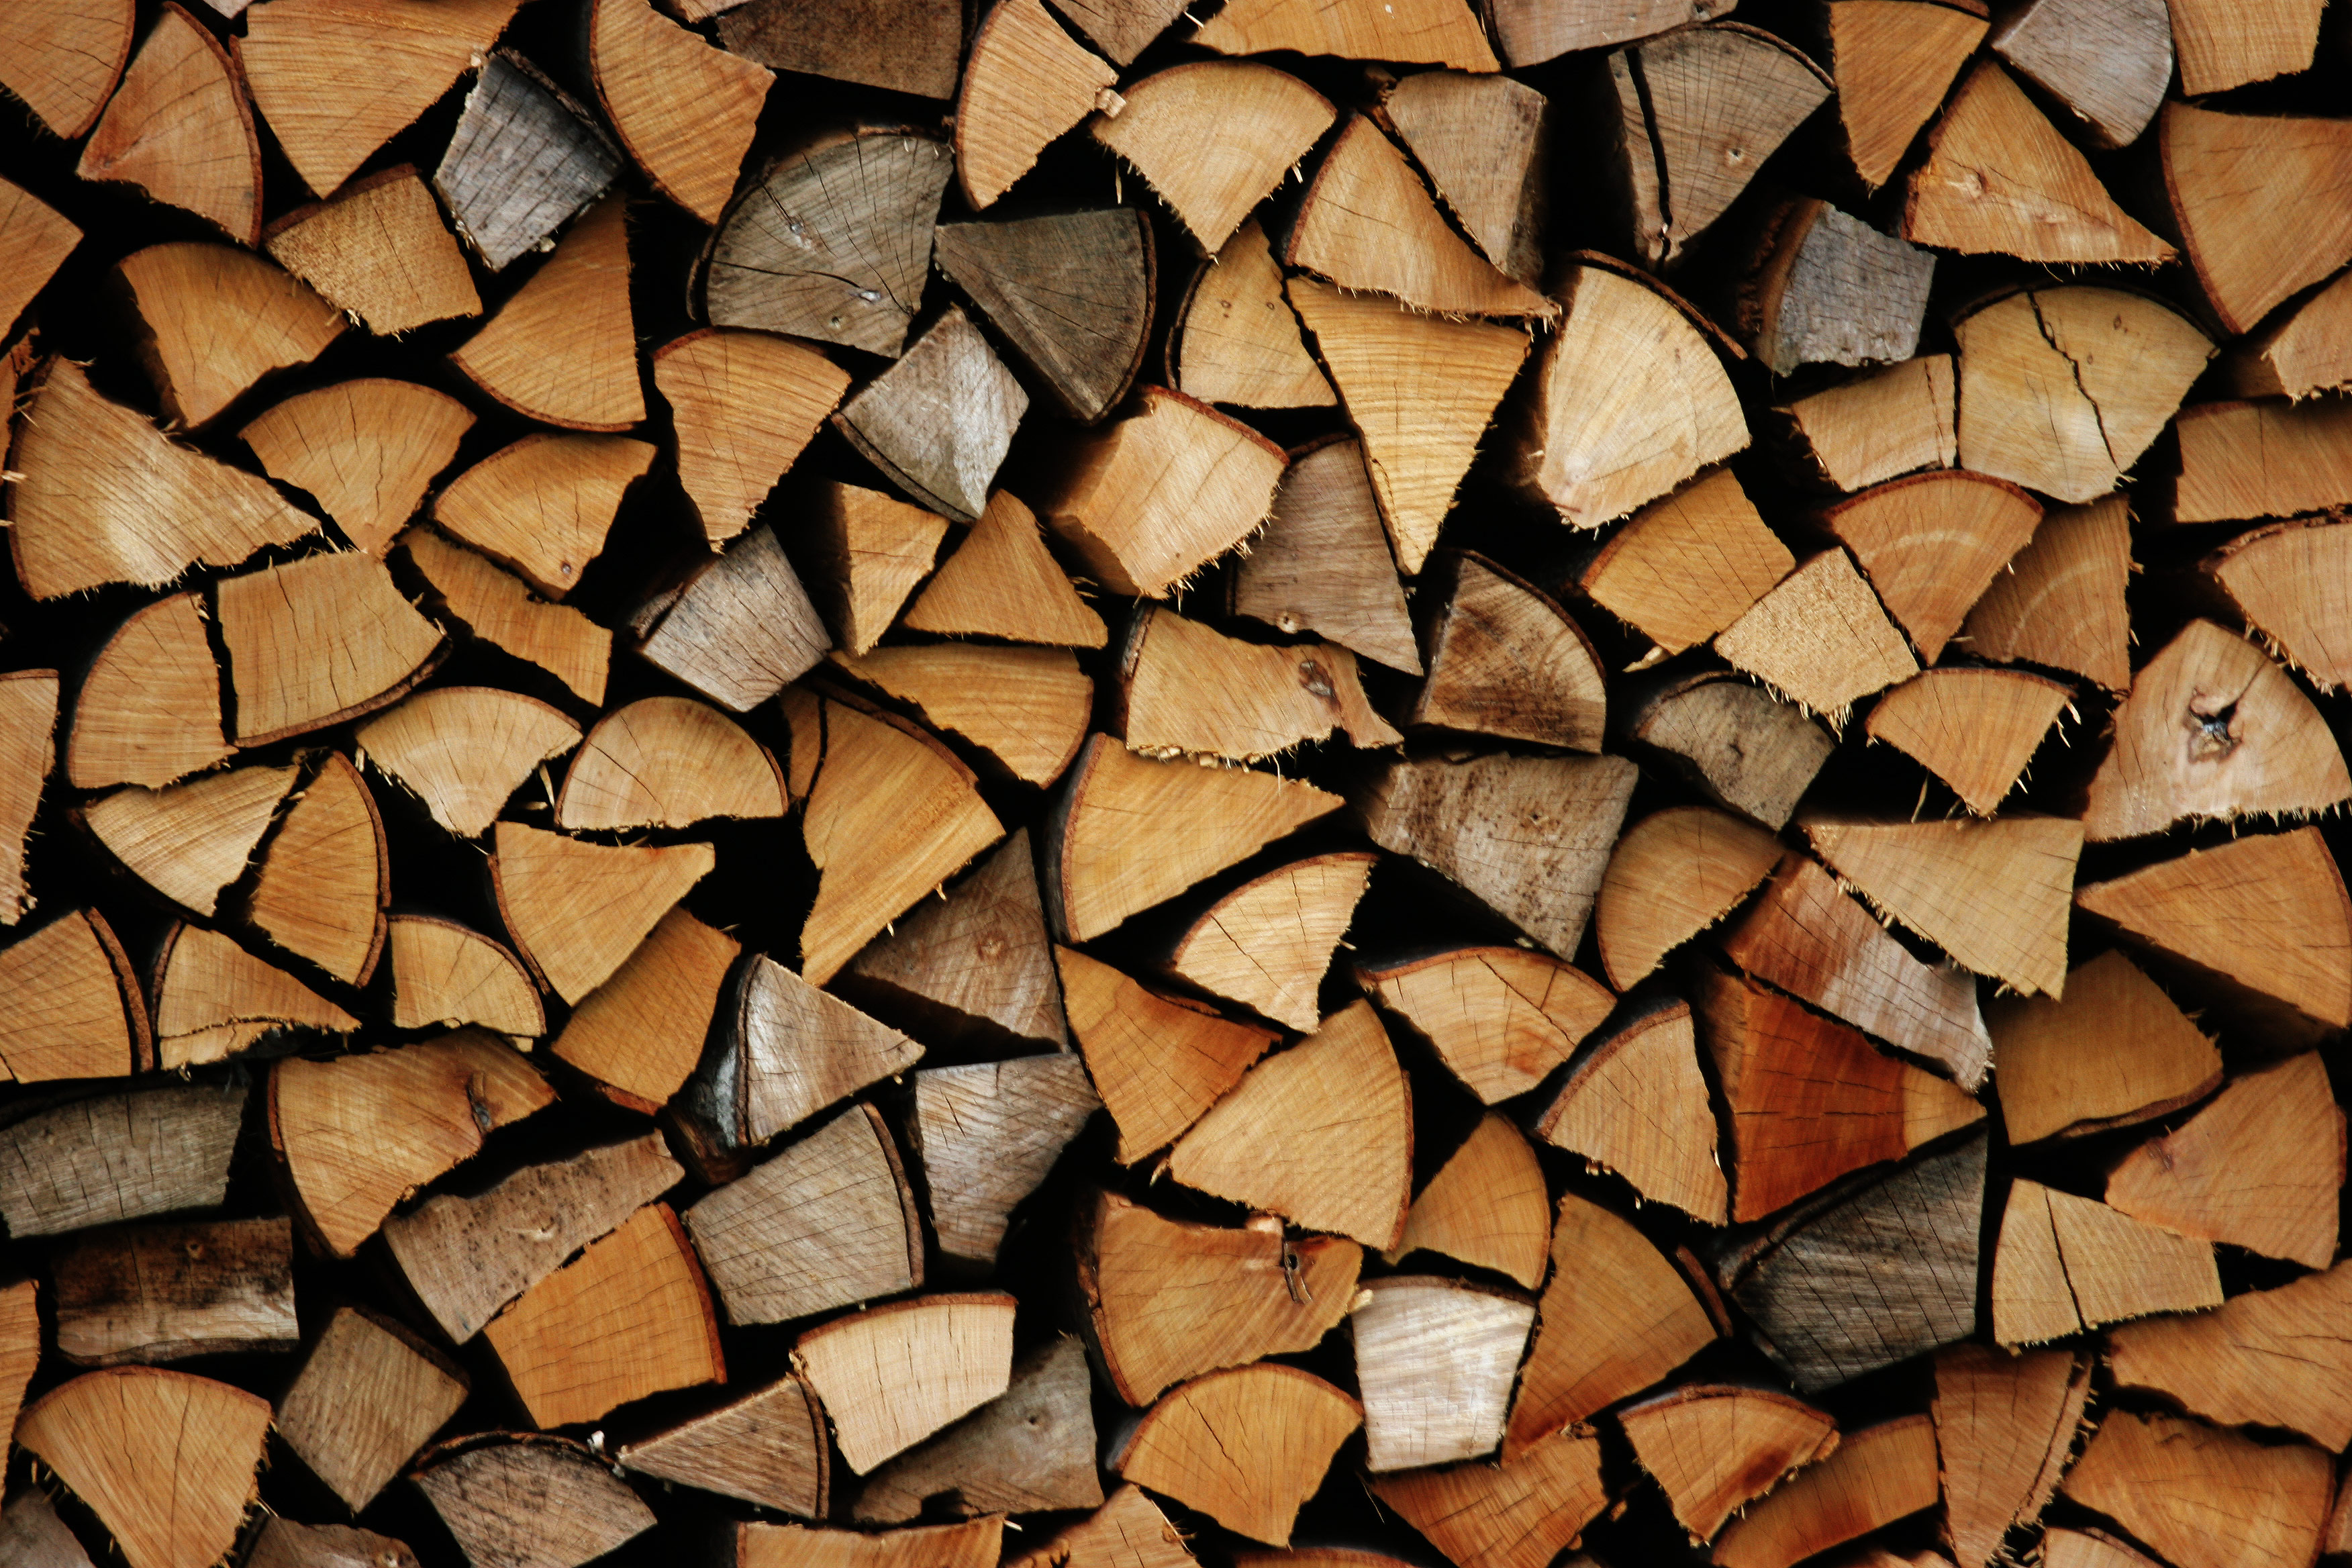 Chopped Firewood Against the Wall